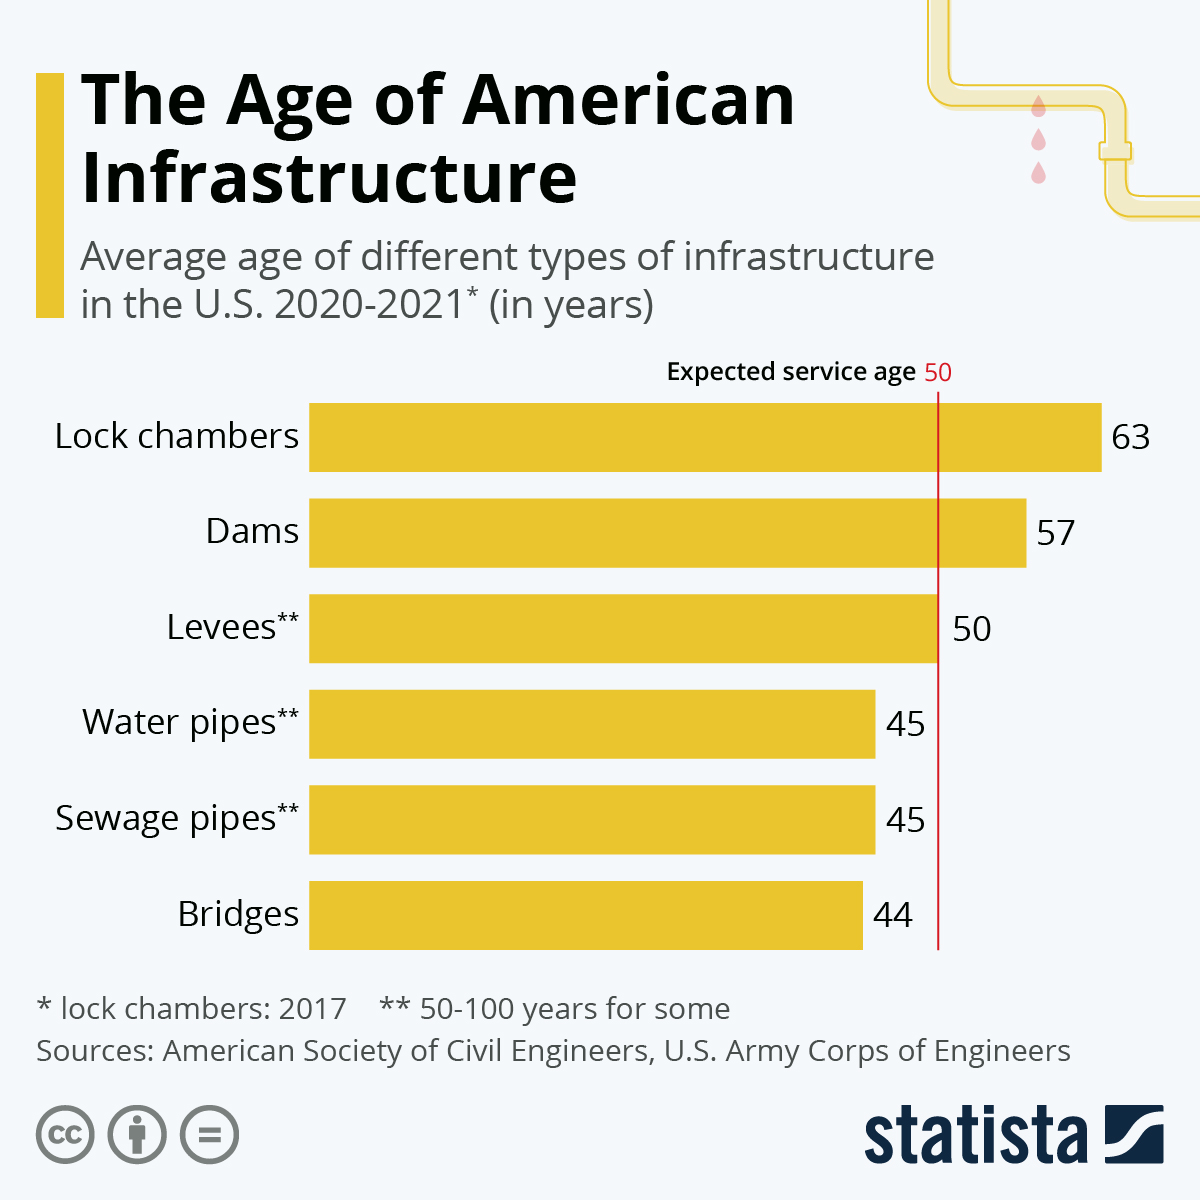 Much US infrastructure is approaching or already beyond its expected service age.